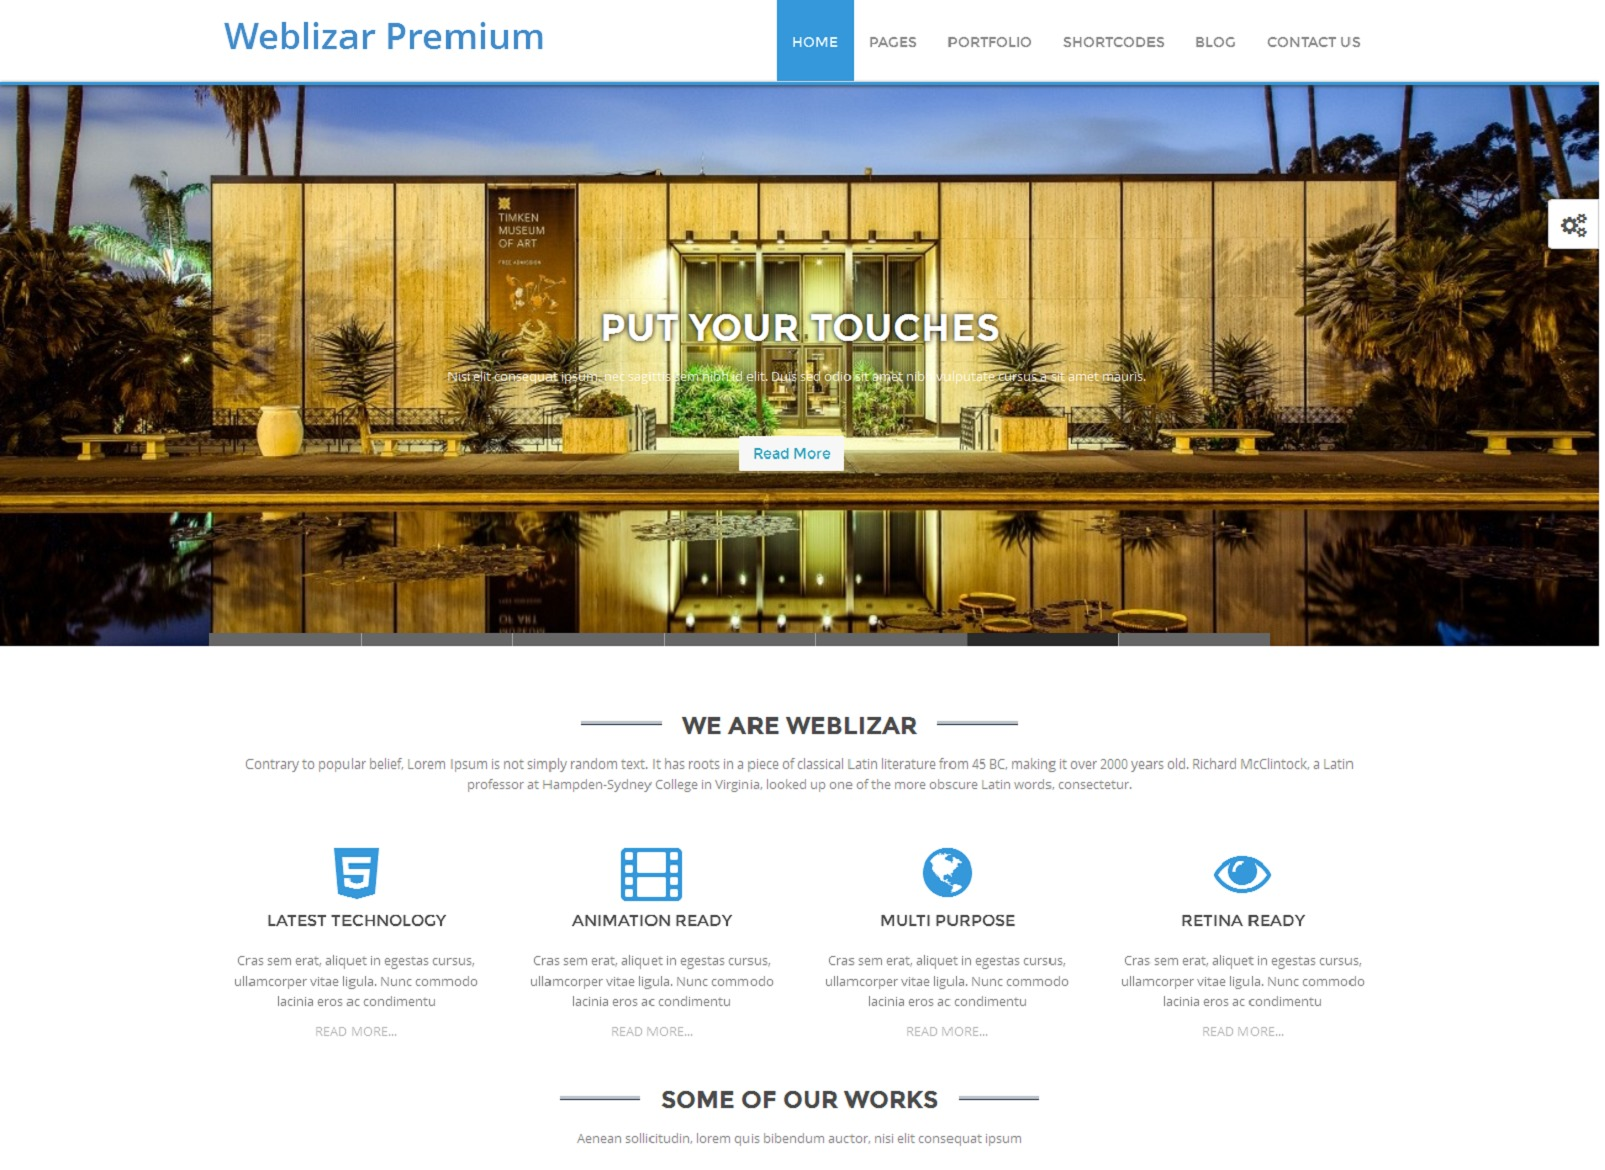 Weblizar Premium WordPress template for business